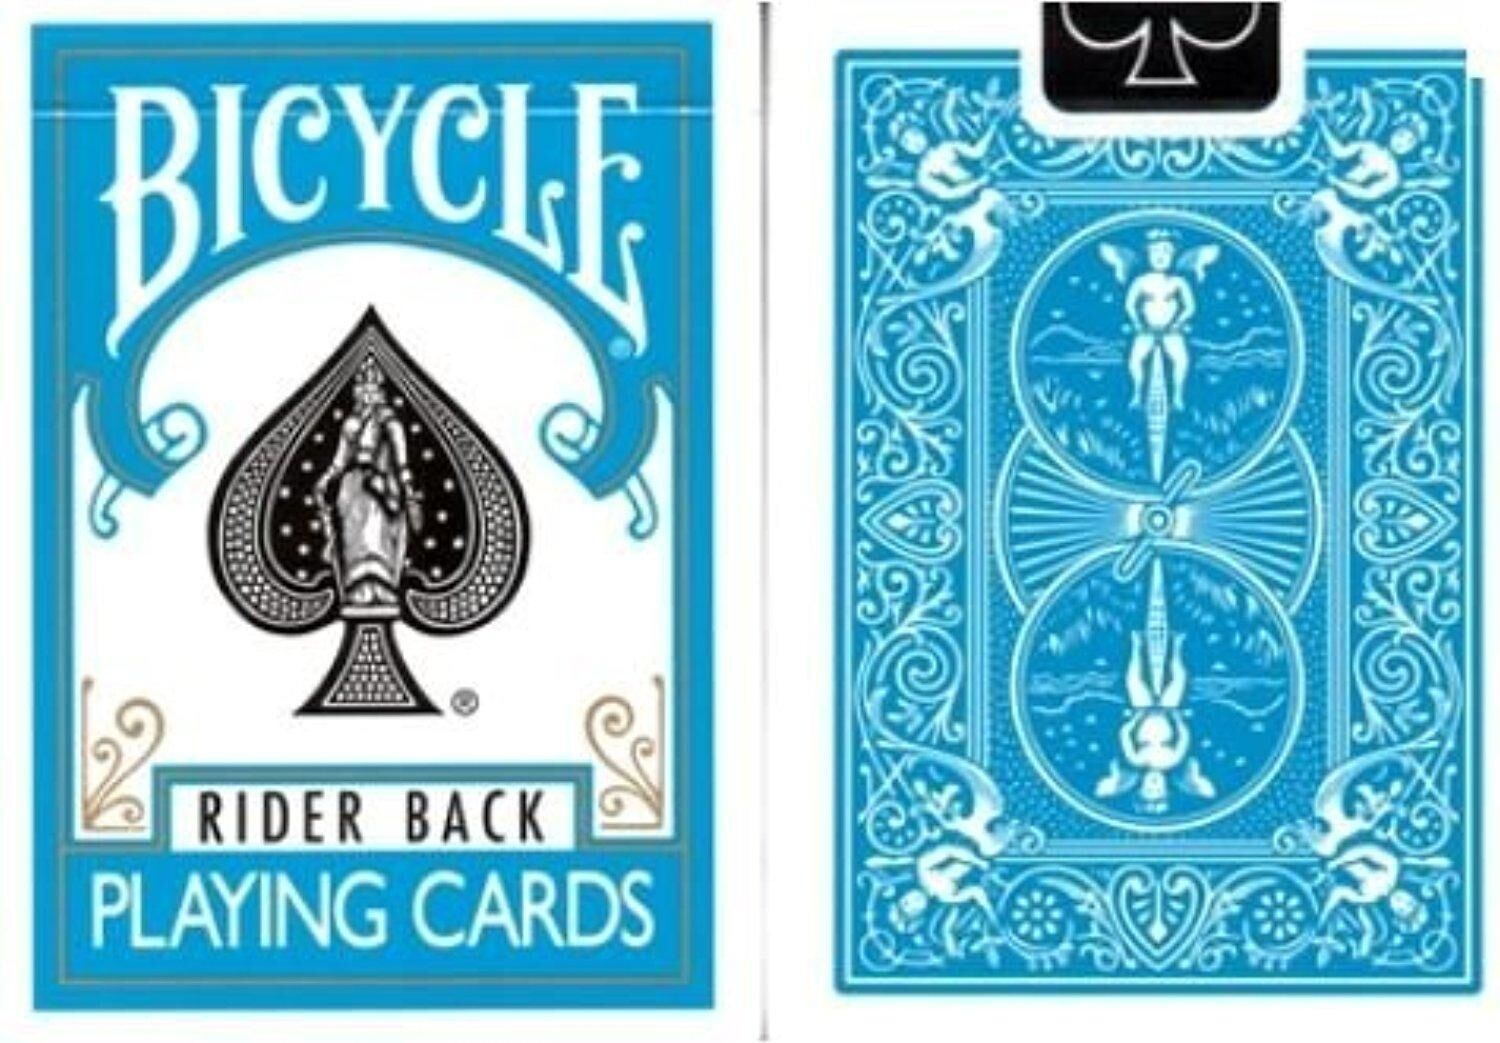 BICYCLE TURQUOISE RIDER BACK DECK OF PLAYING CARDS POKER SIZE MAGIC TRICKS GAMES